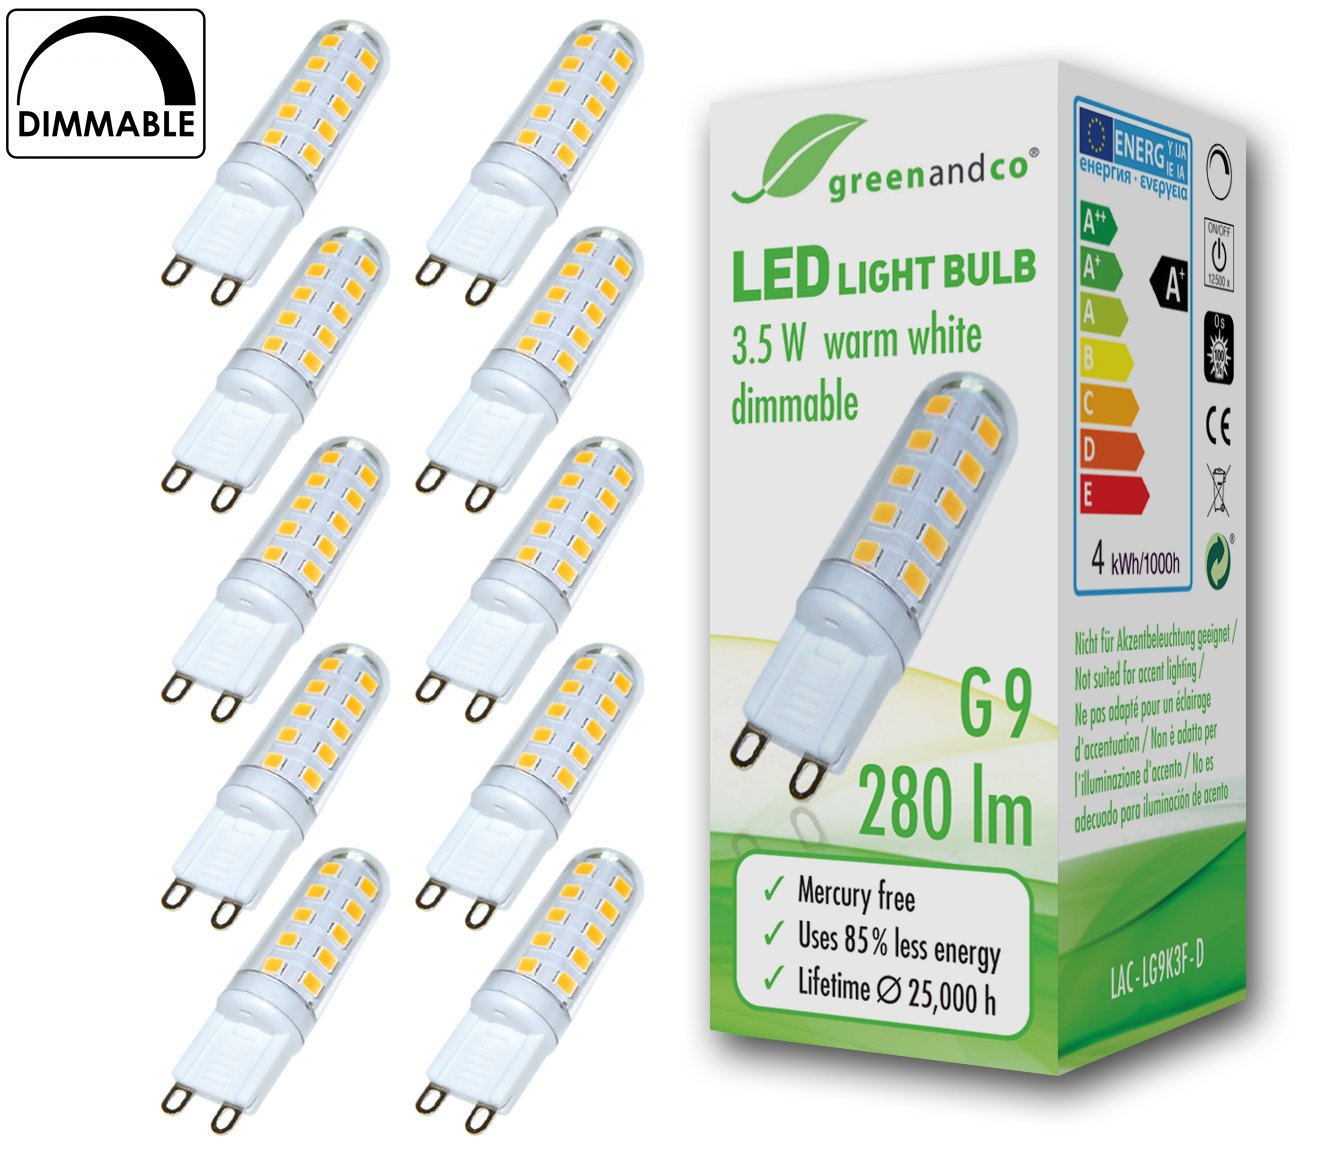 10x Lámpara LED greenandco® regulable G9 3,5W (corresponde a 25-35W) 280lm 3000K (blanco cálido) 270° 230V AC: Amazon.es: Iluminación